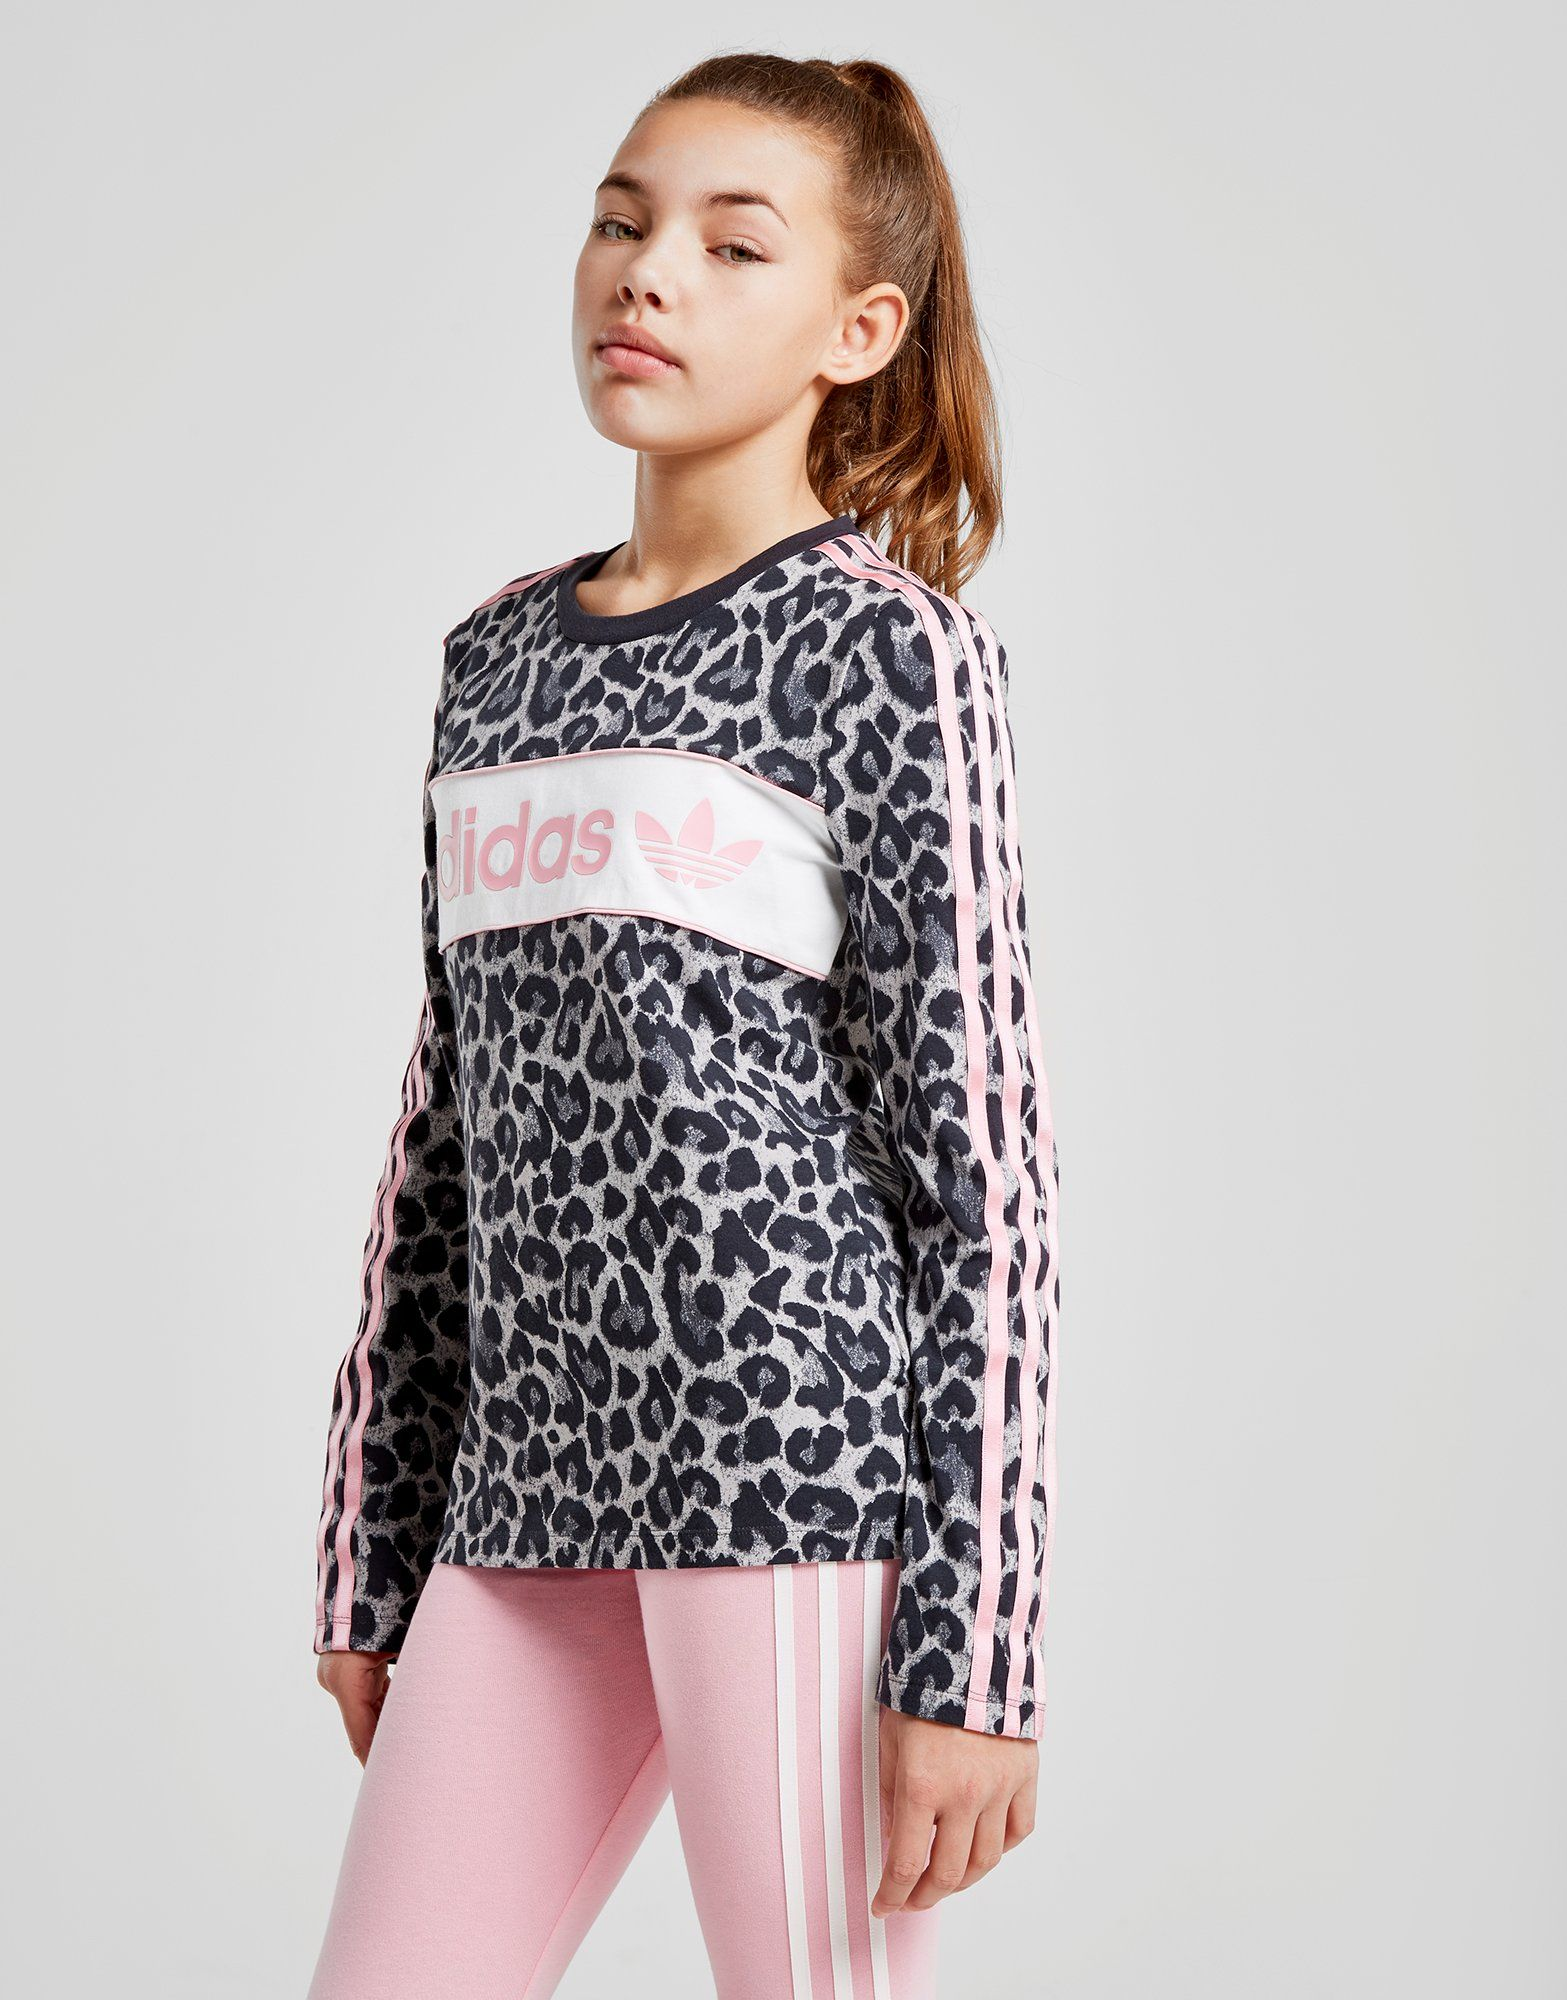 adidas Originals T-shirt à manches longues Girls' Leopard Junior